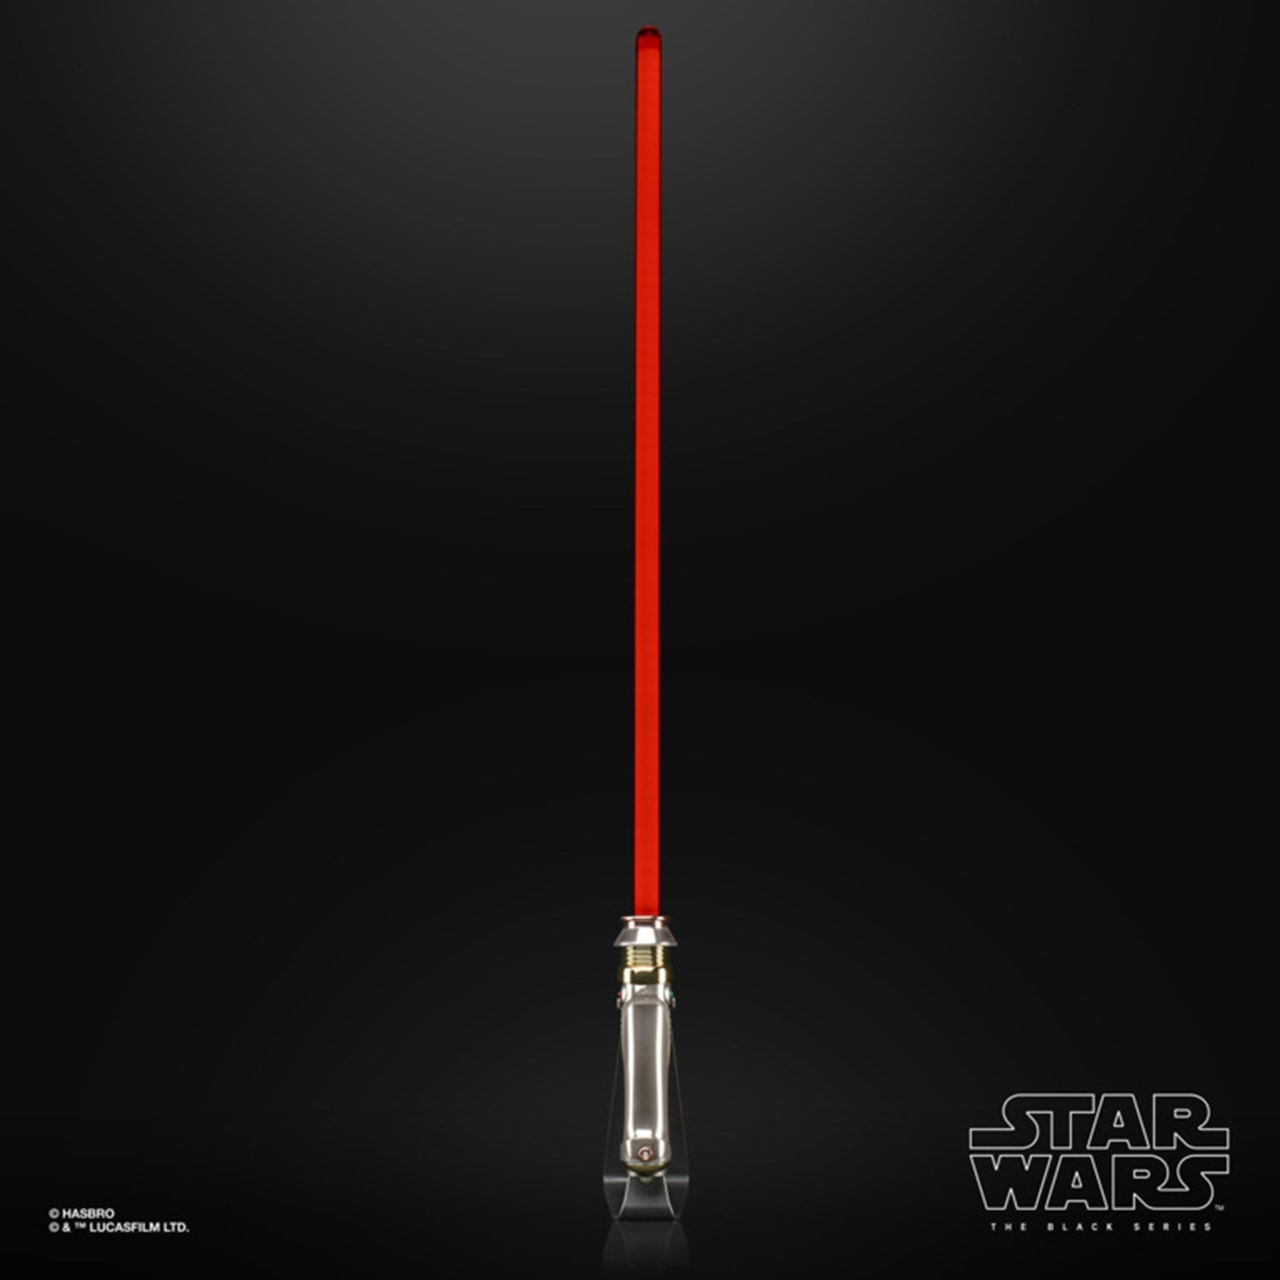 Star Wars The Black Series: Darth Sidious Force FX Lightsaber - 1